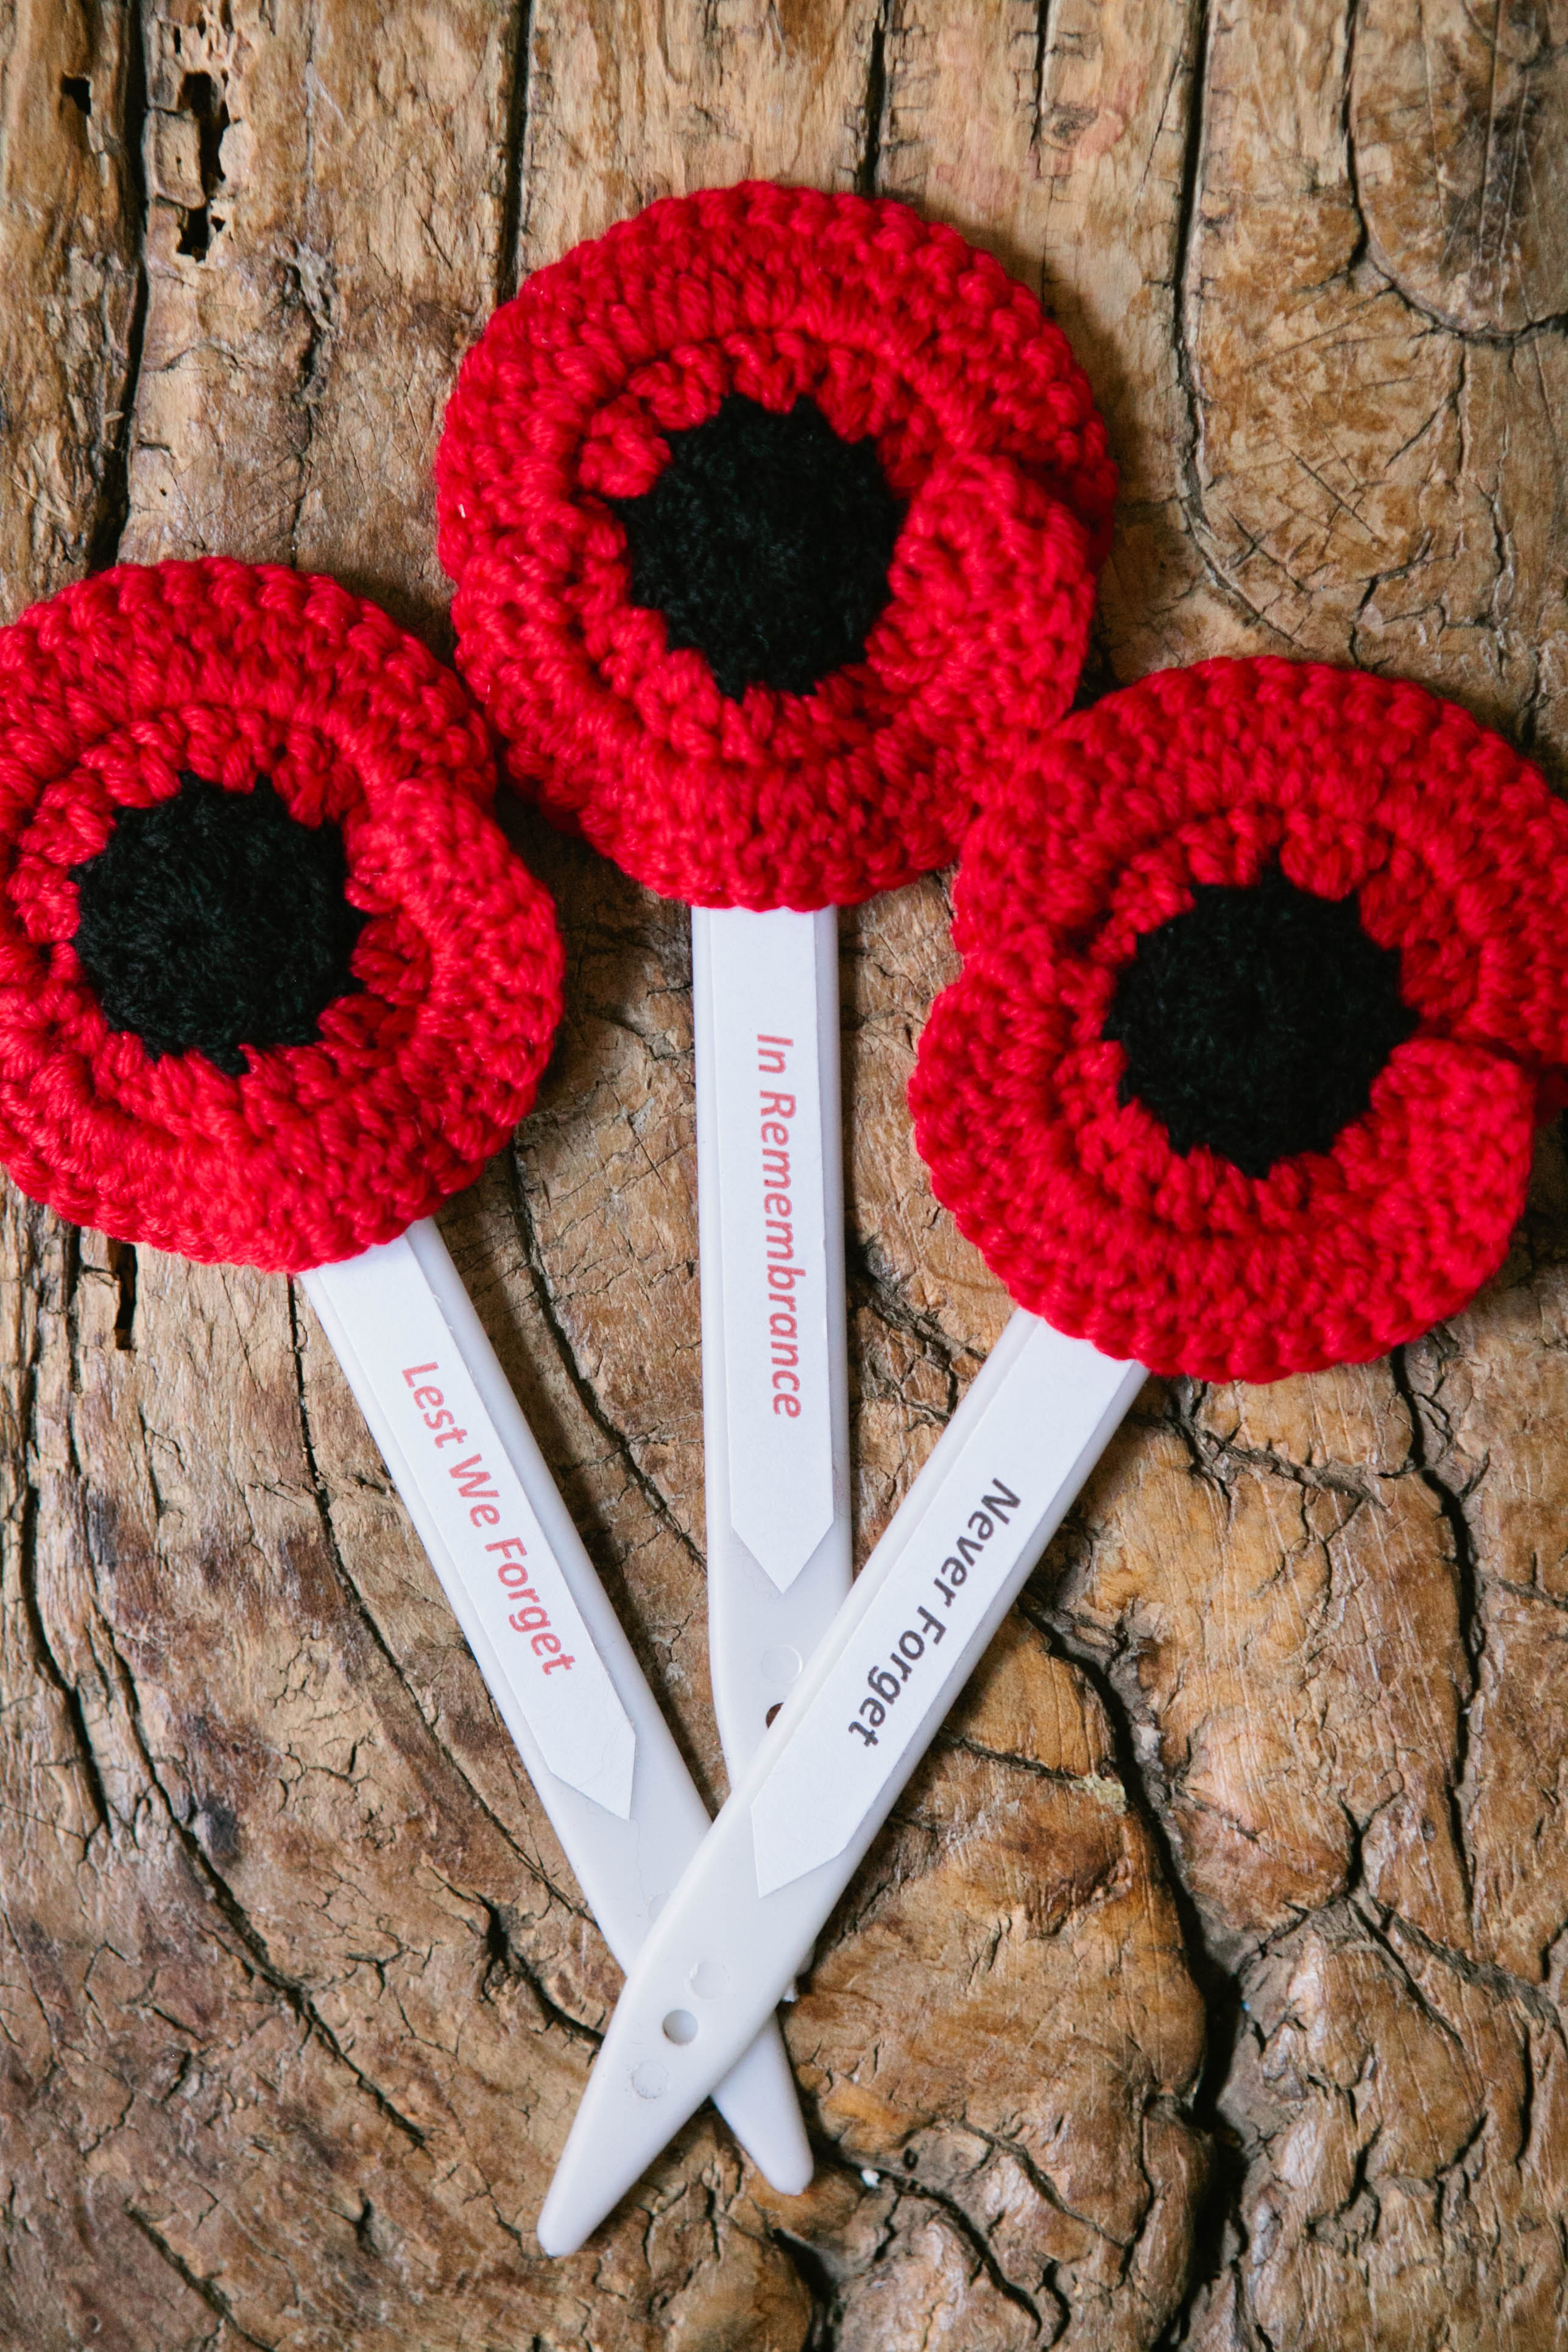 Knitted Poppy Pattern For British Legion : Free Pattern Inside Crochet Magazine   Blog Inside Crochet